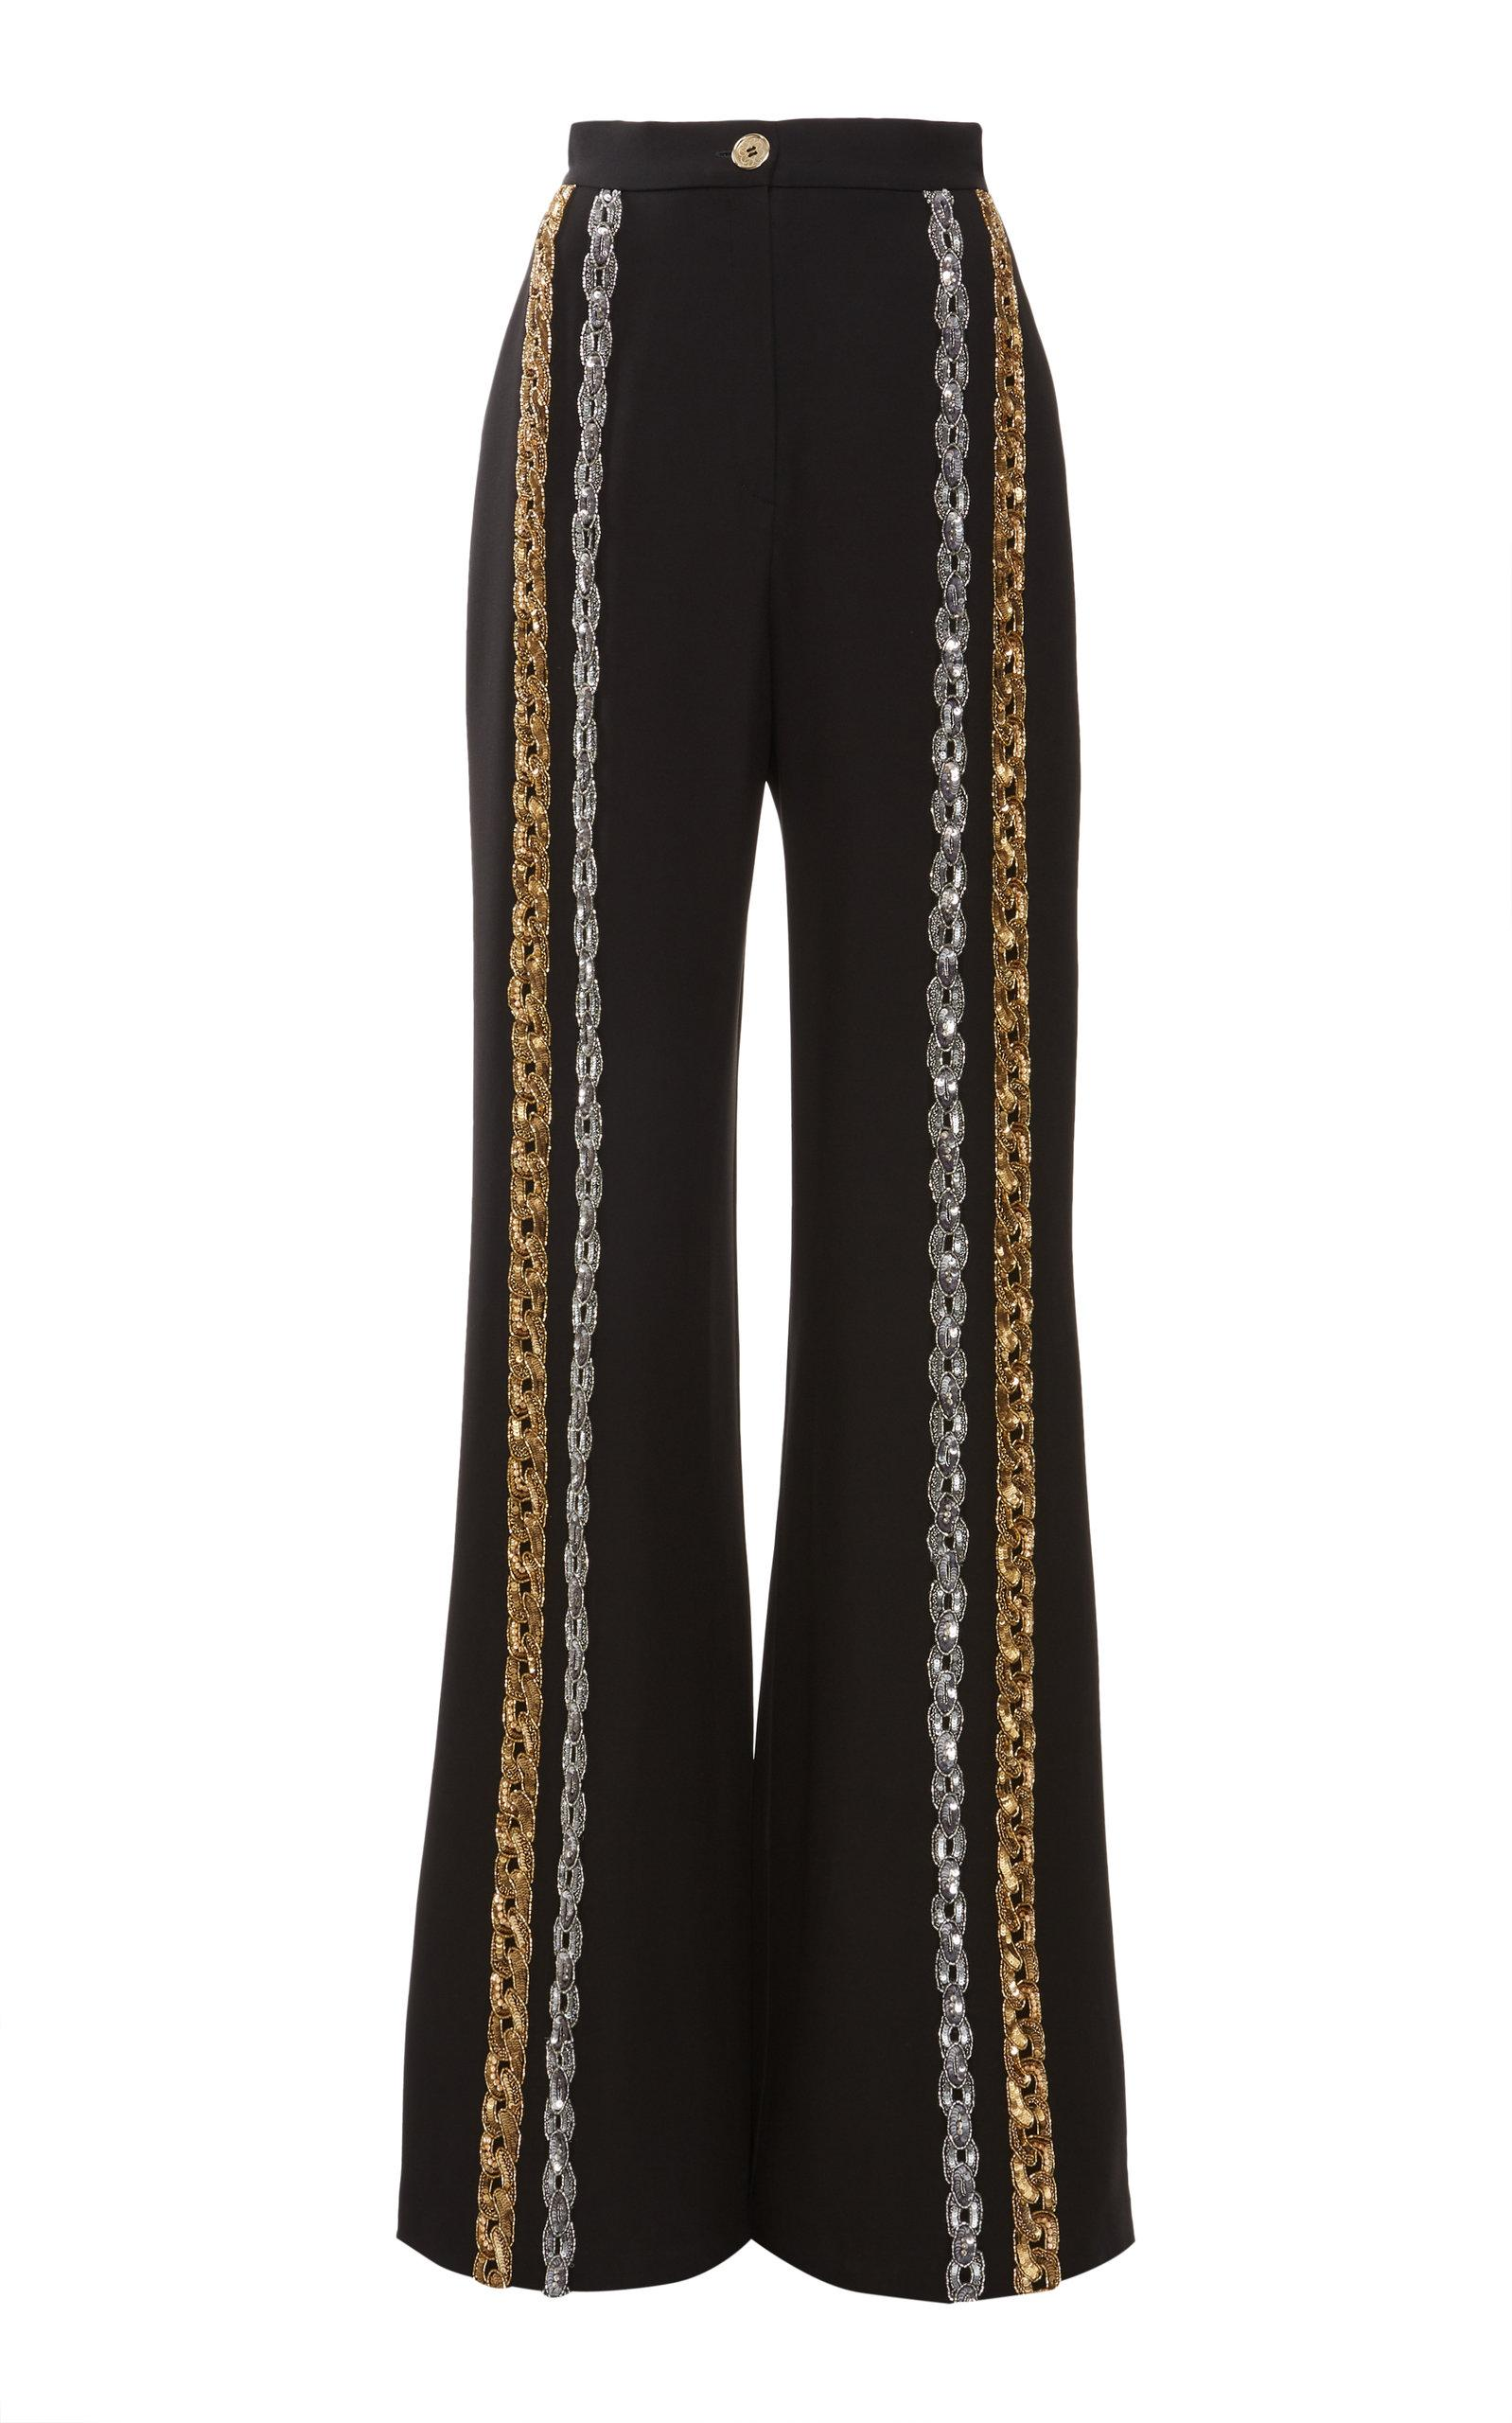 5c42c5c02093 Elie Saab High Waist Sequin Embellished Cady Pants in Black - Lyst